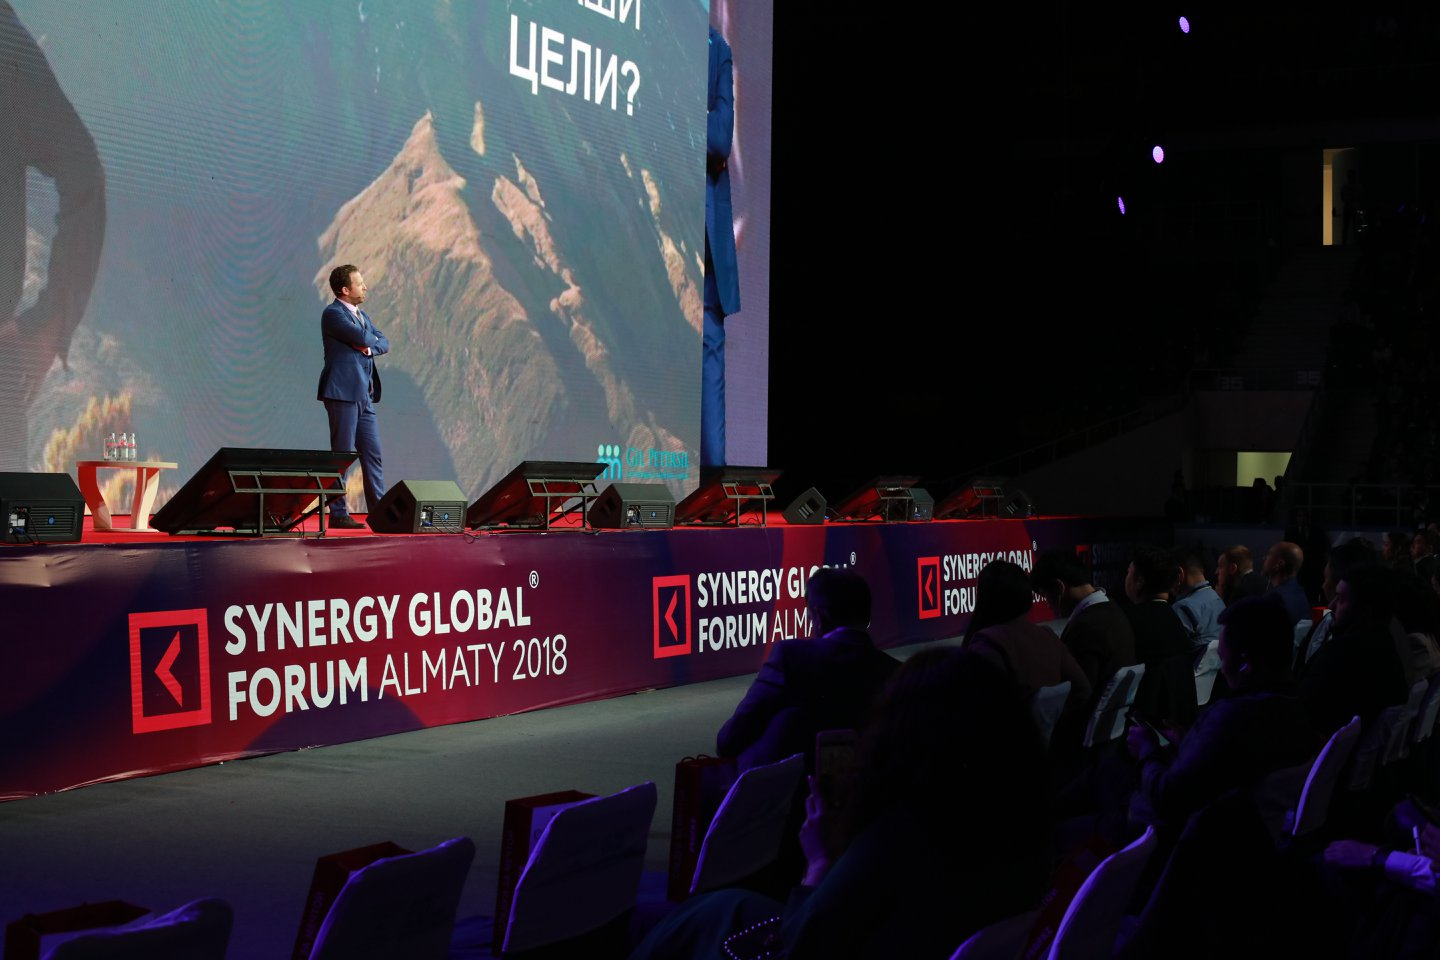 Synergy Global Forum Almaty 2018